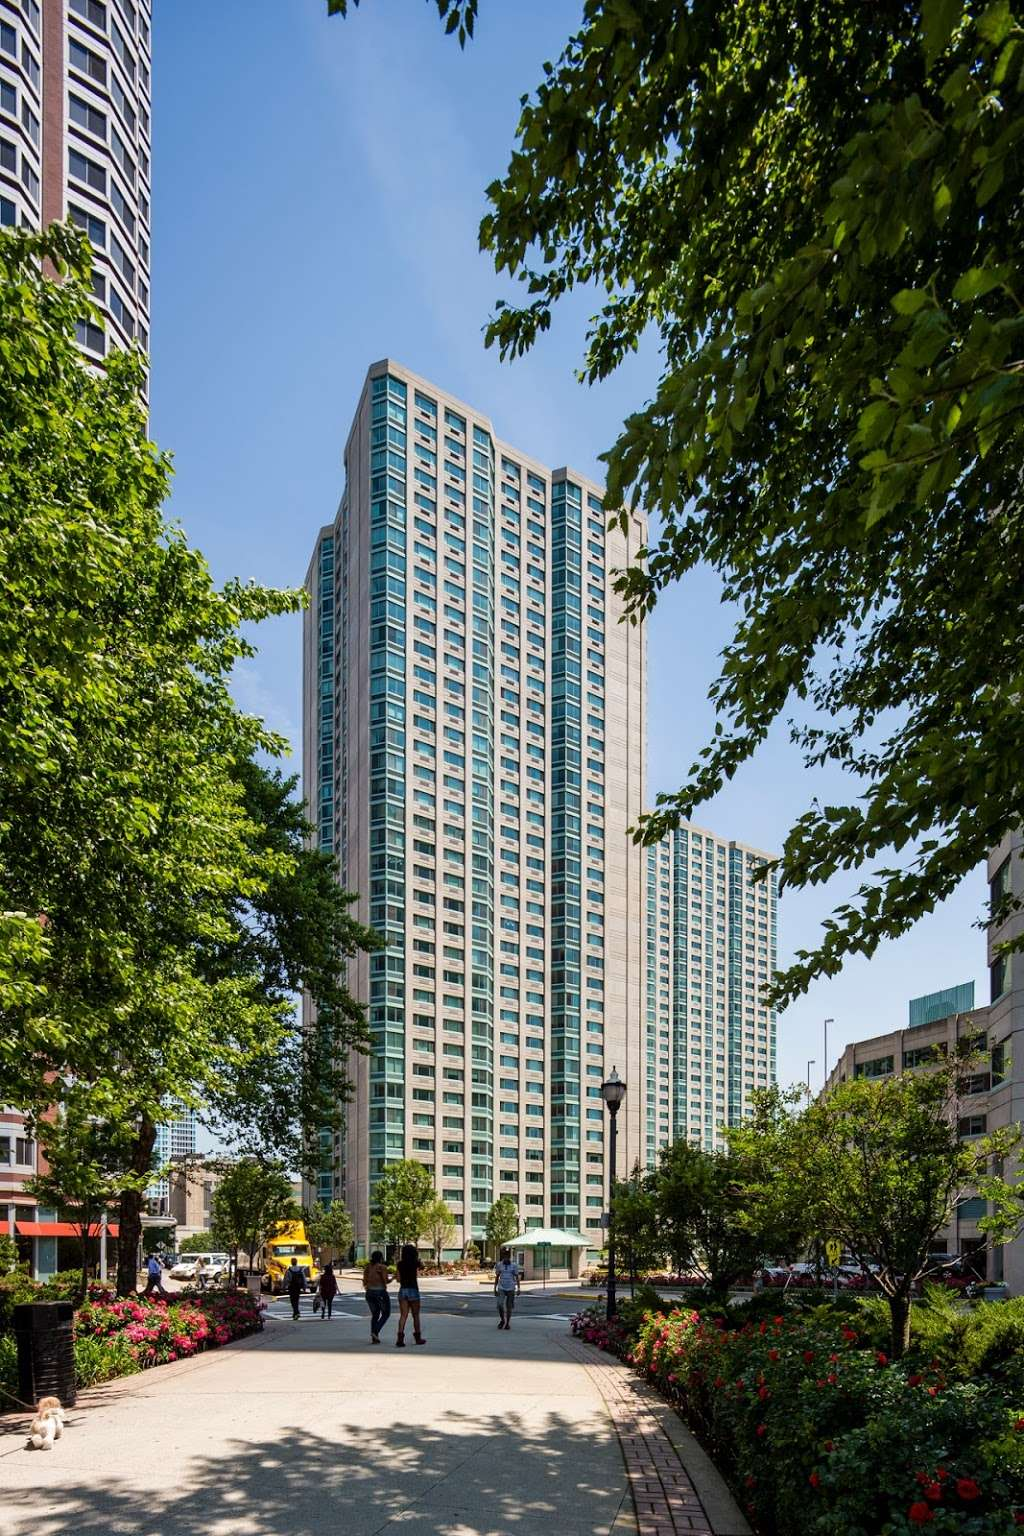 Southampton at Newport - real estate agency  | Photo 6 of 9 | Address: 20 River Ct, Jersey City, NJ 07310, USA | Phone: (844) 388-6913